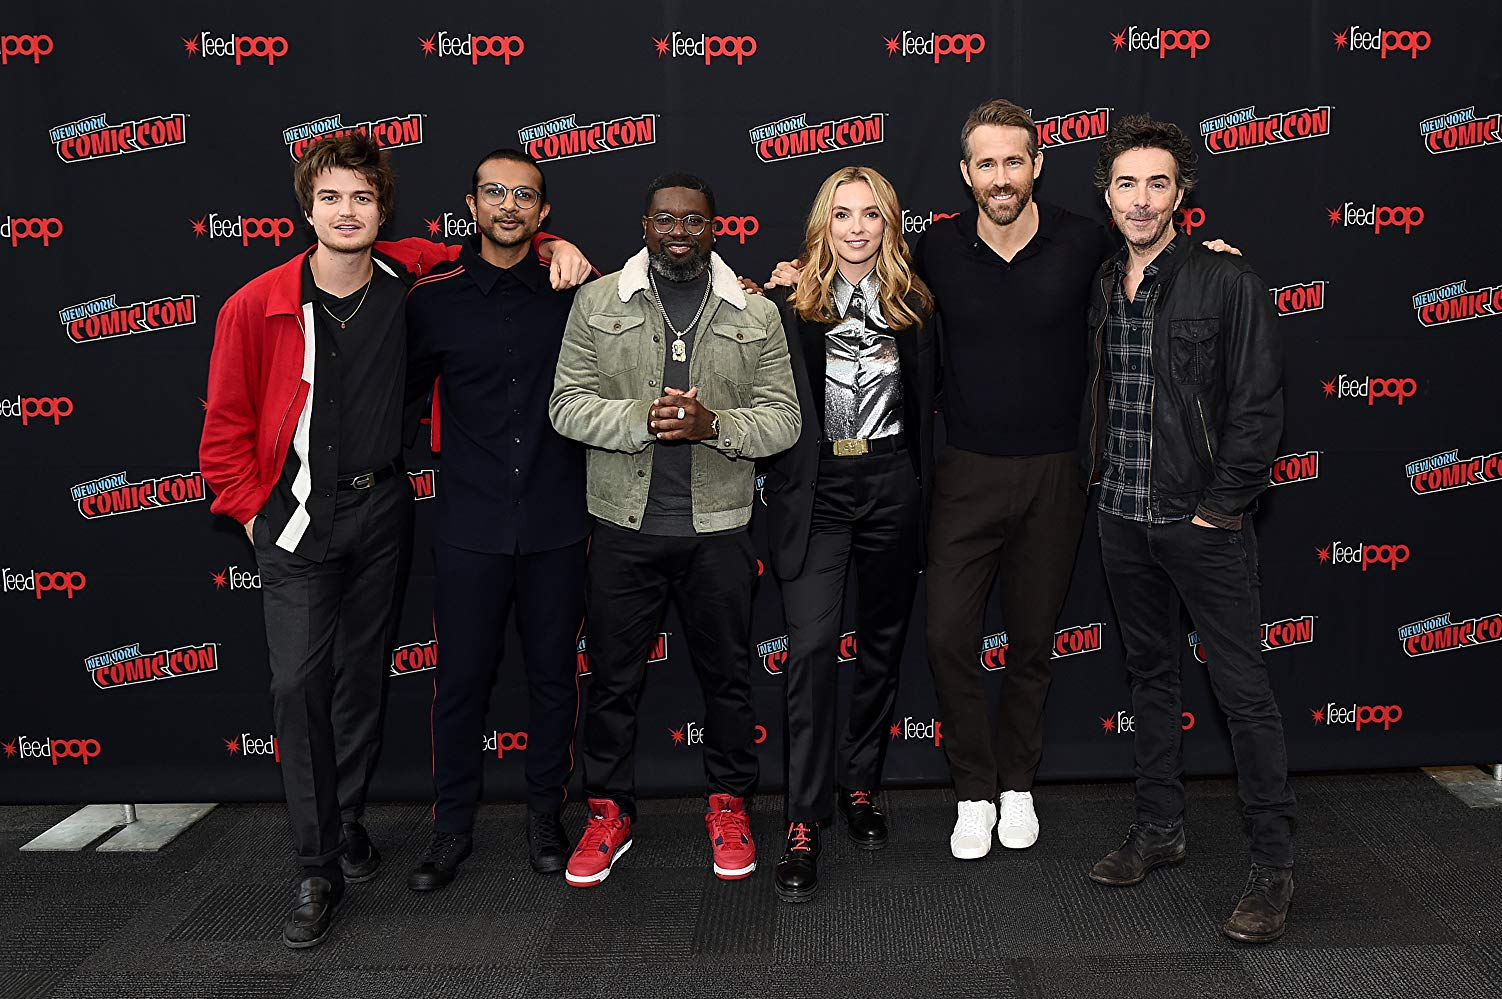 The cast of 'Free Guy' at NYCC 2019 (Source: IMDB)